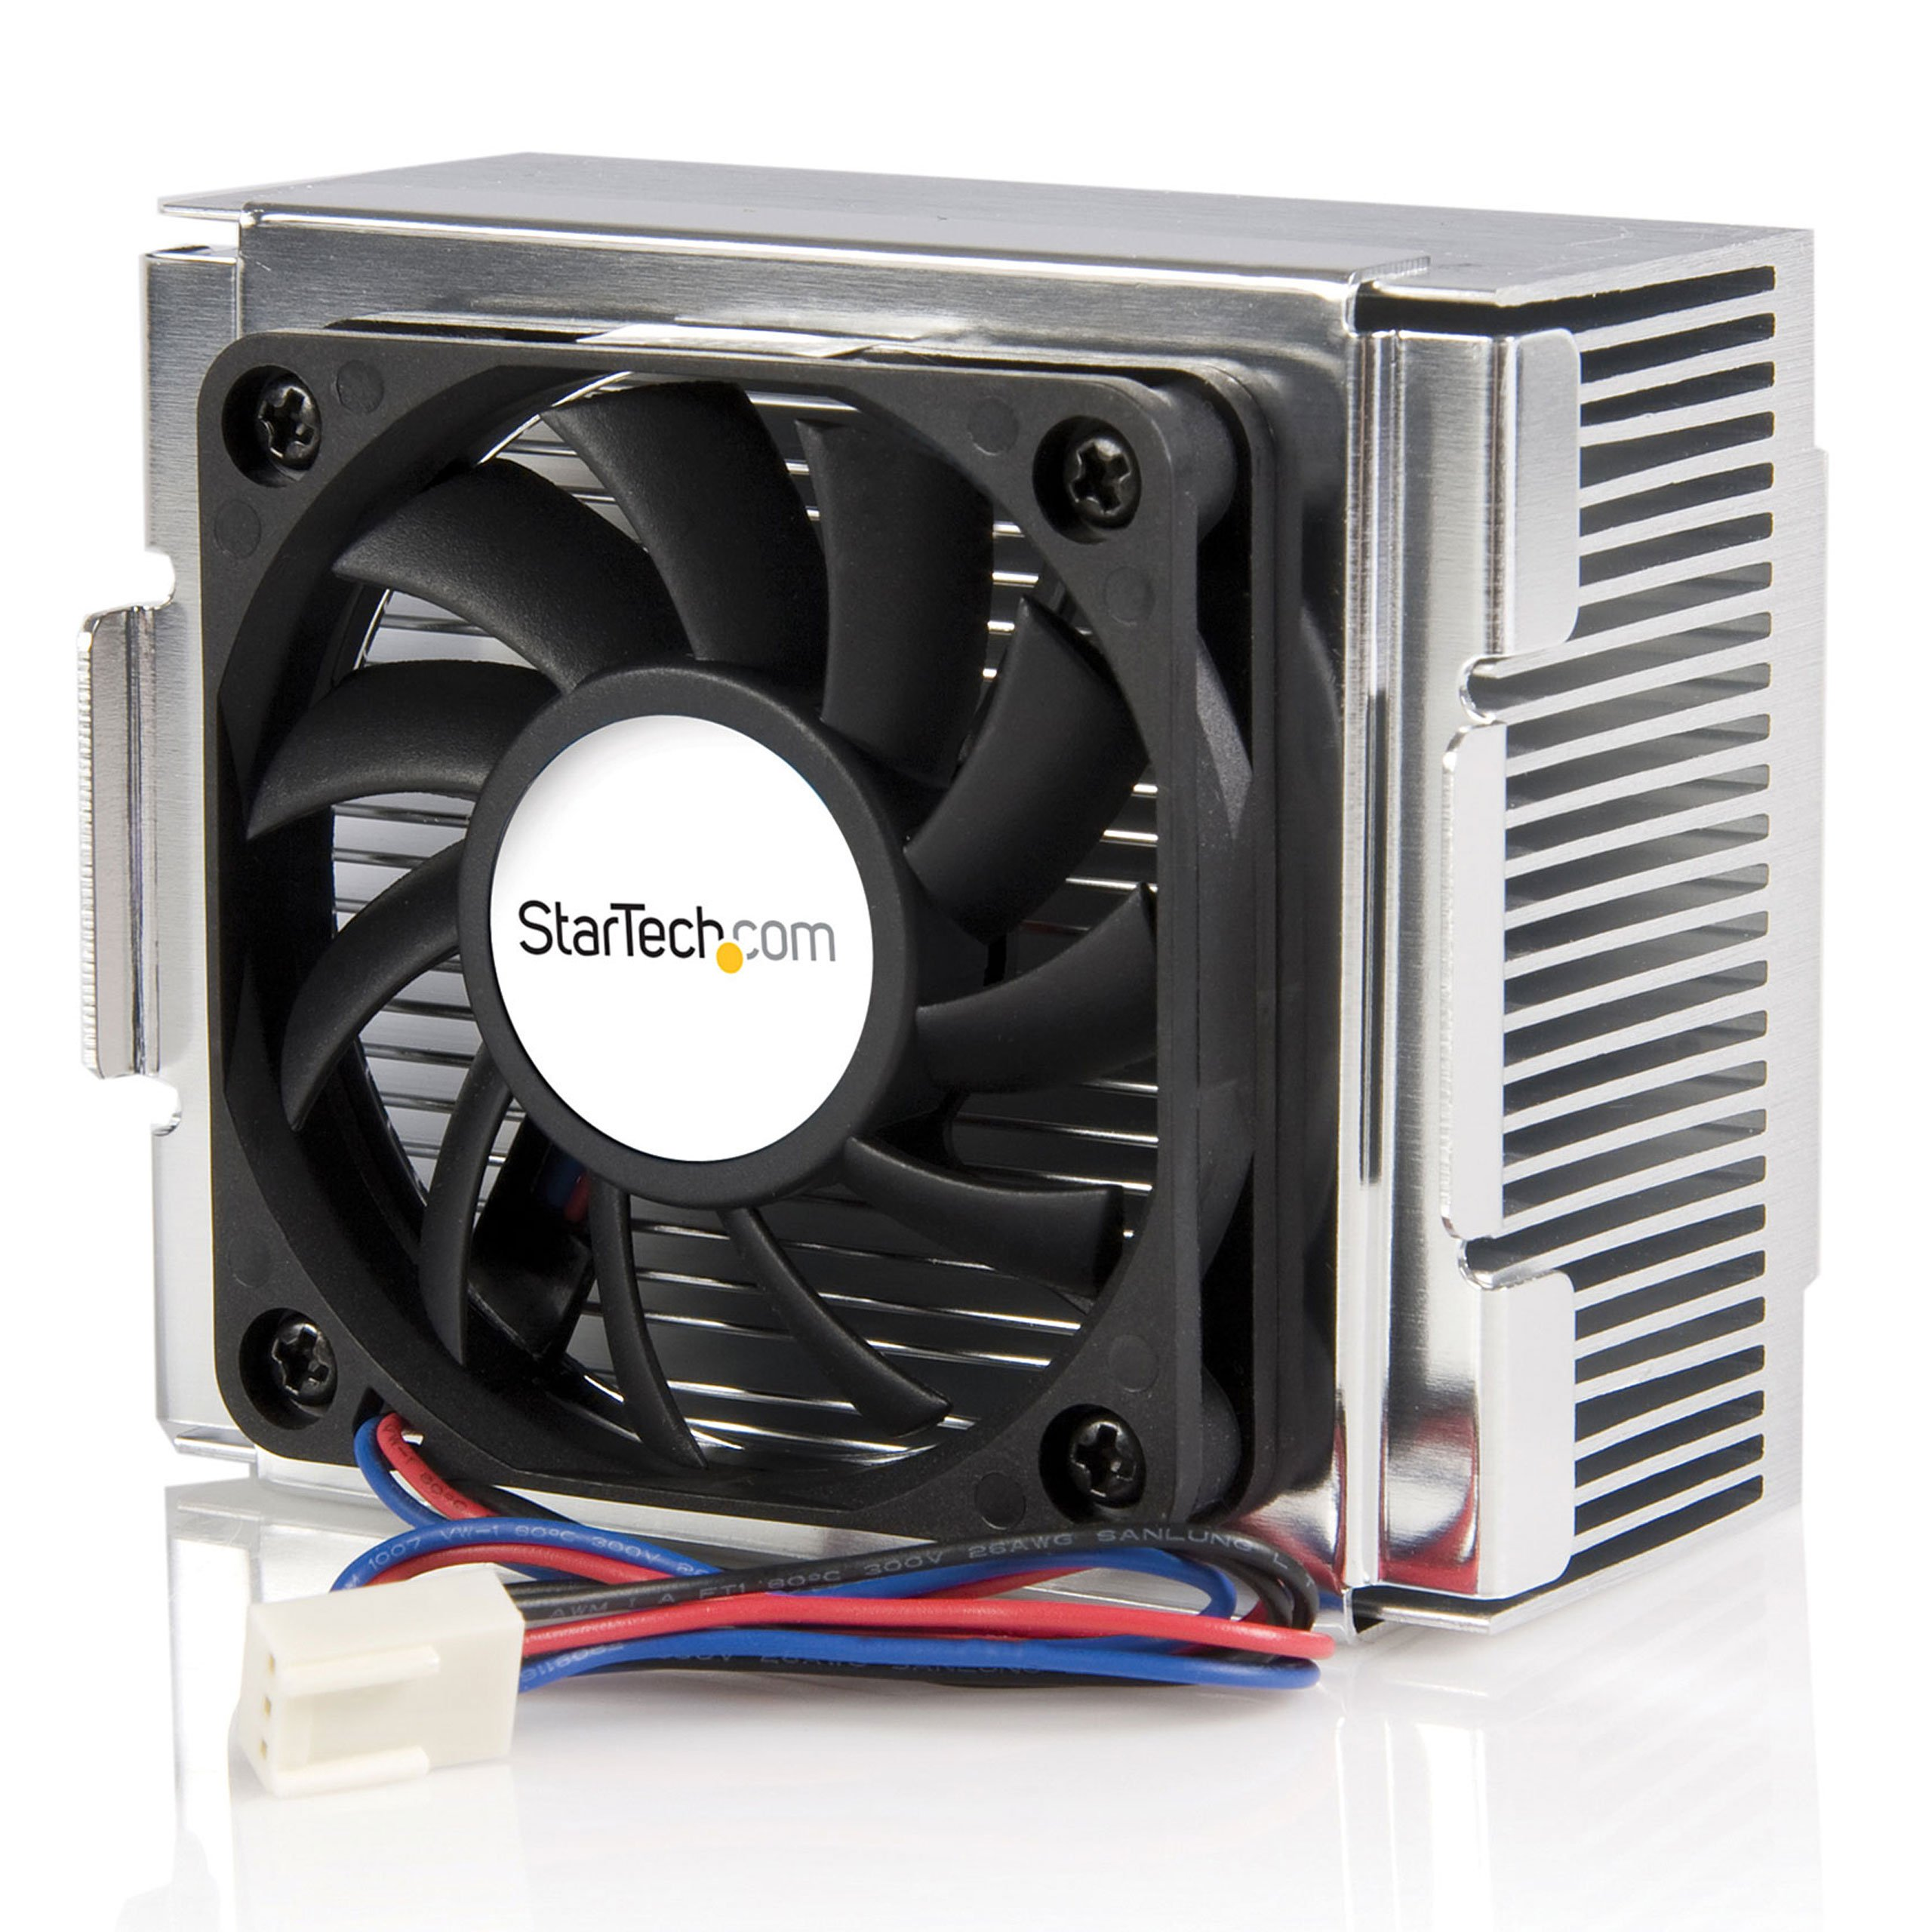 StarTech.com 85x70x50mm Socket 478 CPU Cooler Fan with Heatsink & TX3 Connector FAN478 (Black)